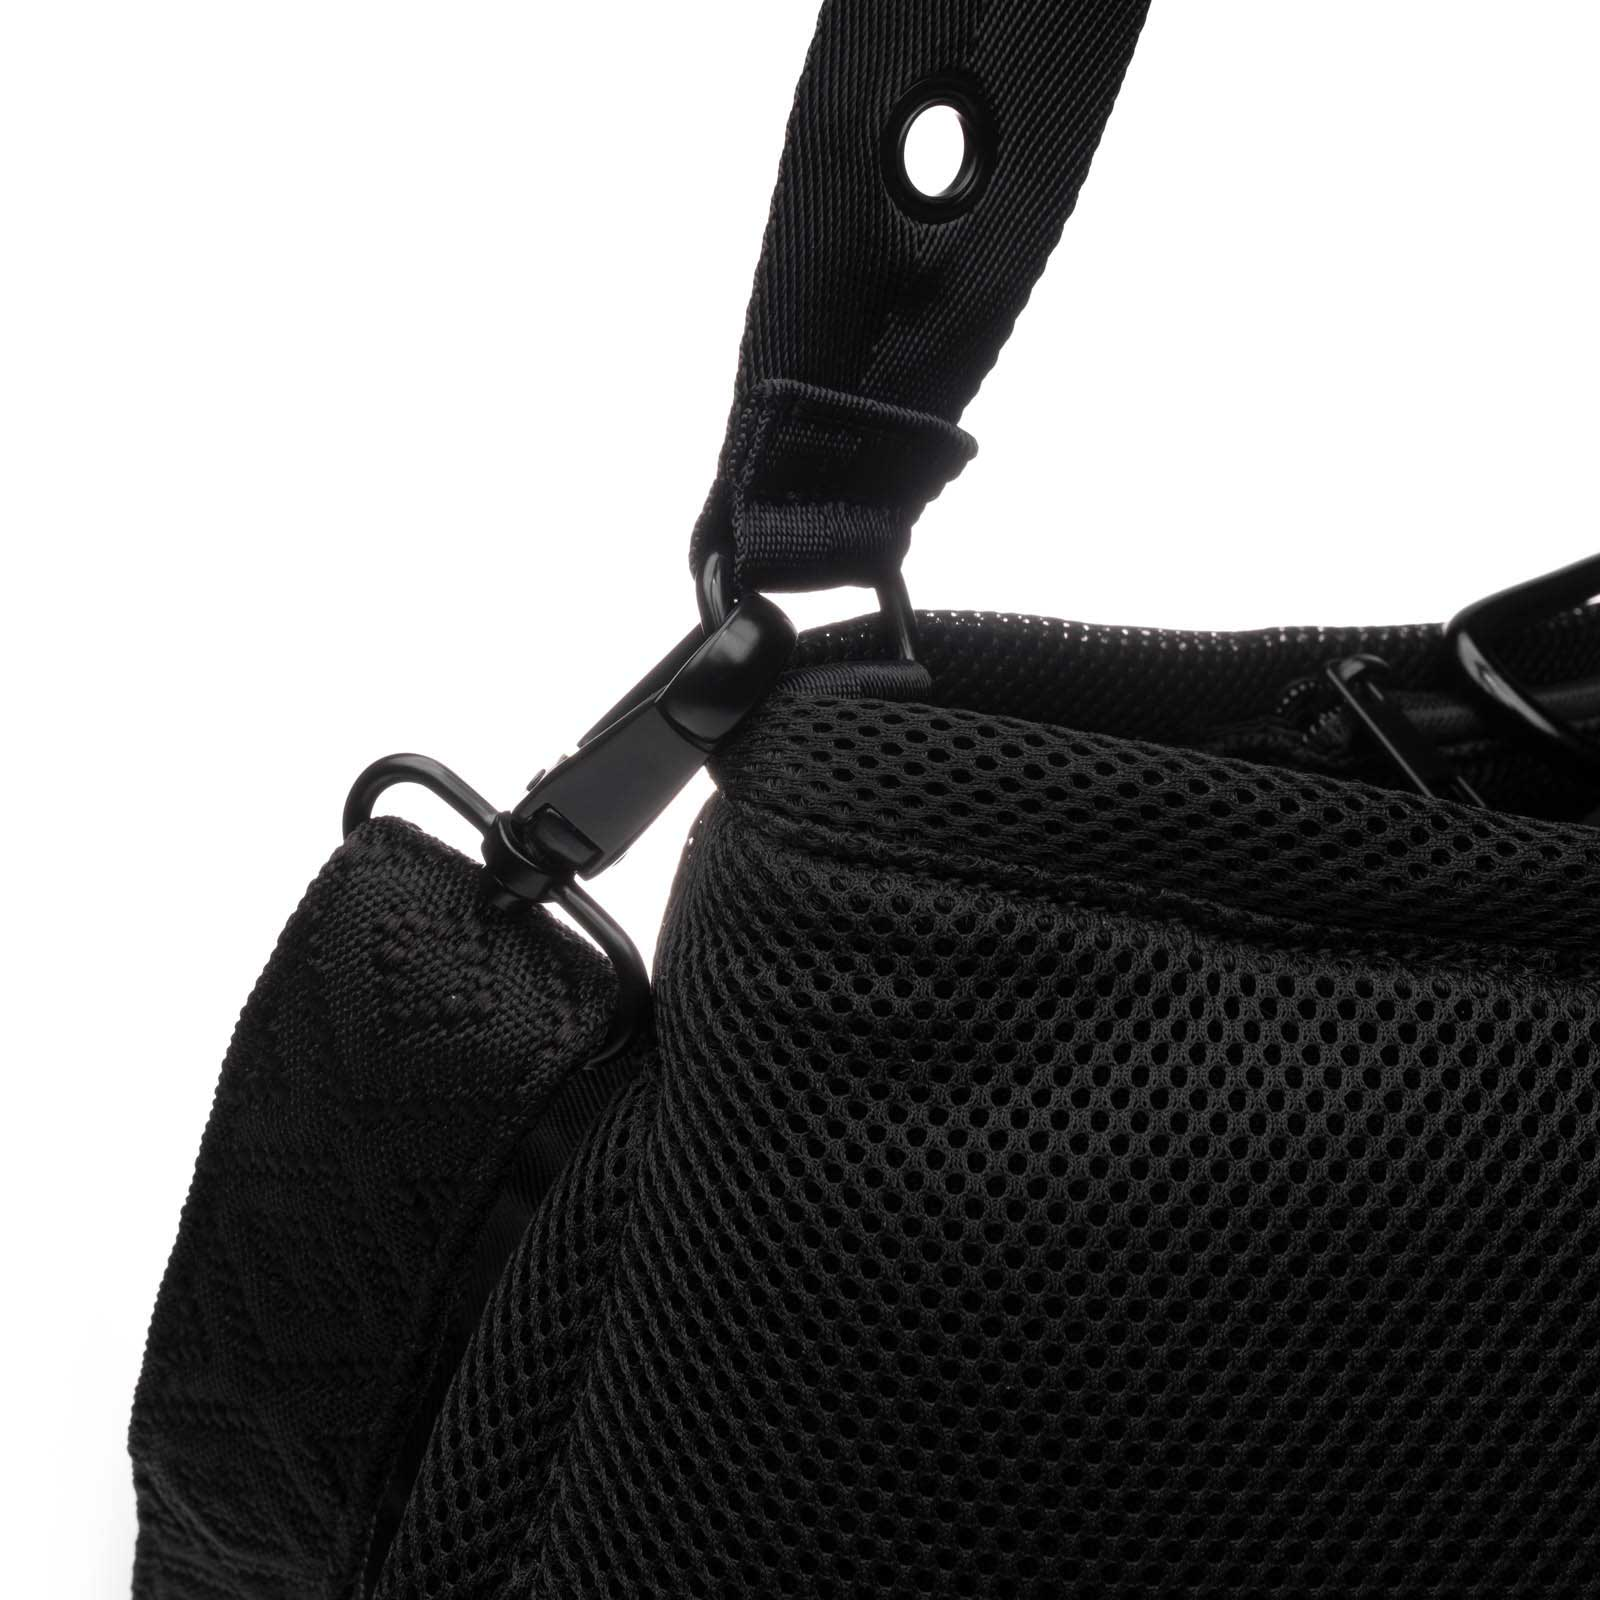 Additional Adjustable Strap